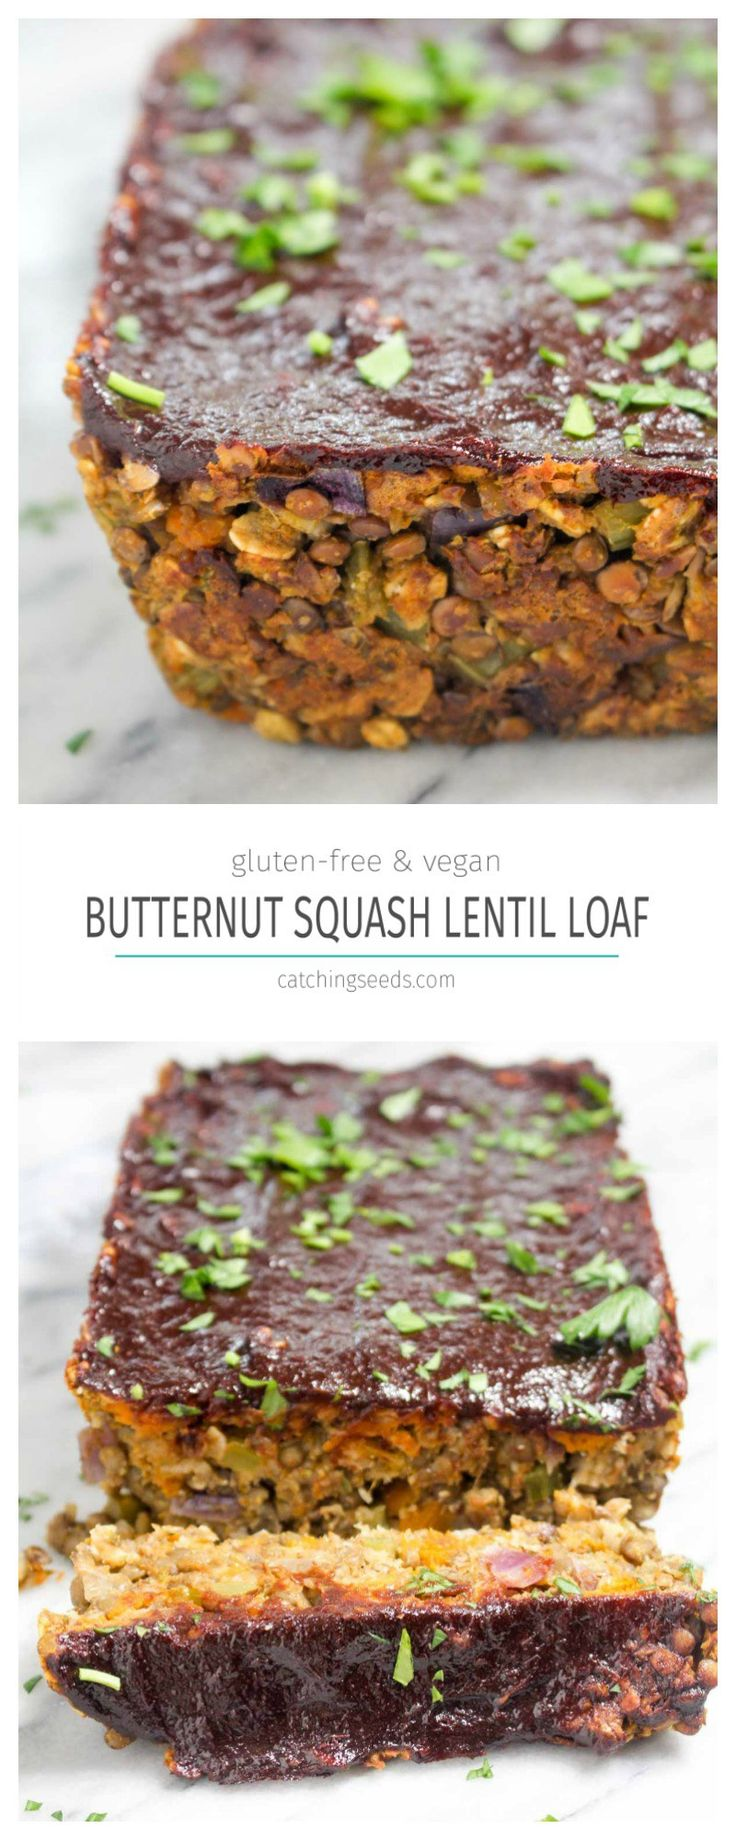 This Butternut Squash Lentil Loaf is the BEST fall entree. It is gluten-free, egg-free, dairy-free, nut-free, and vegan!